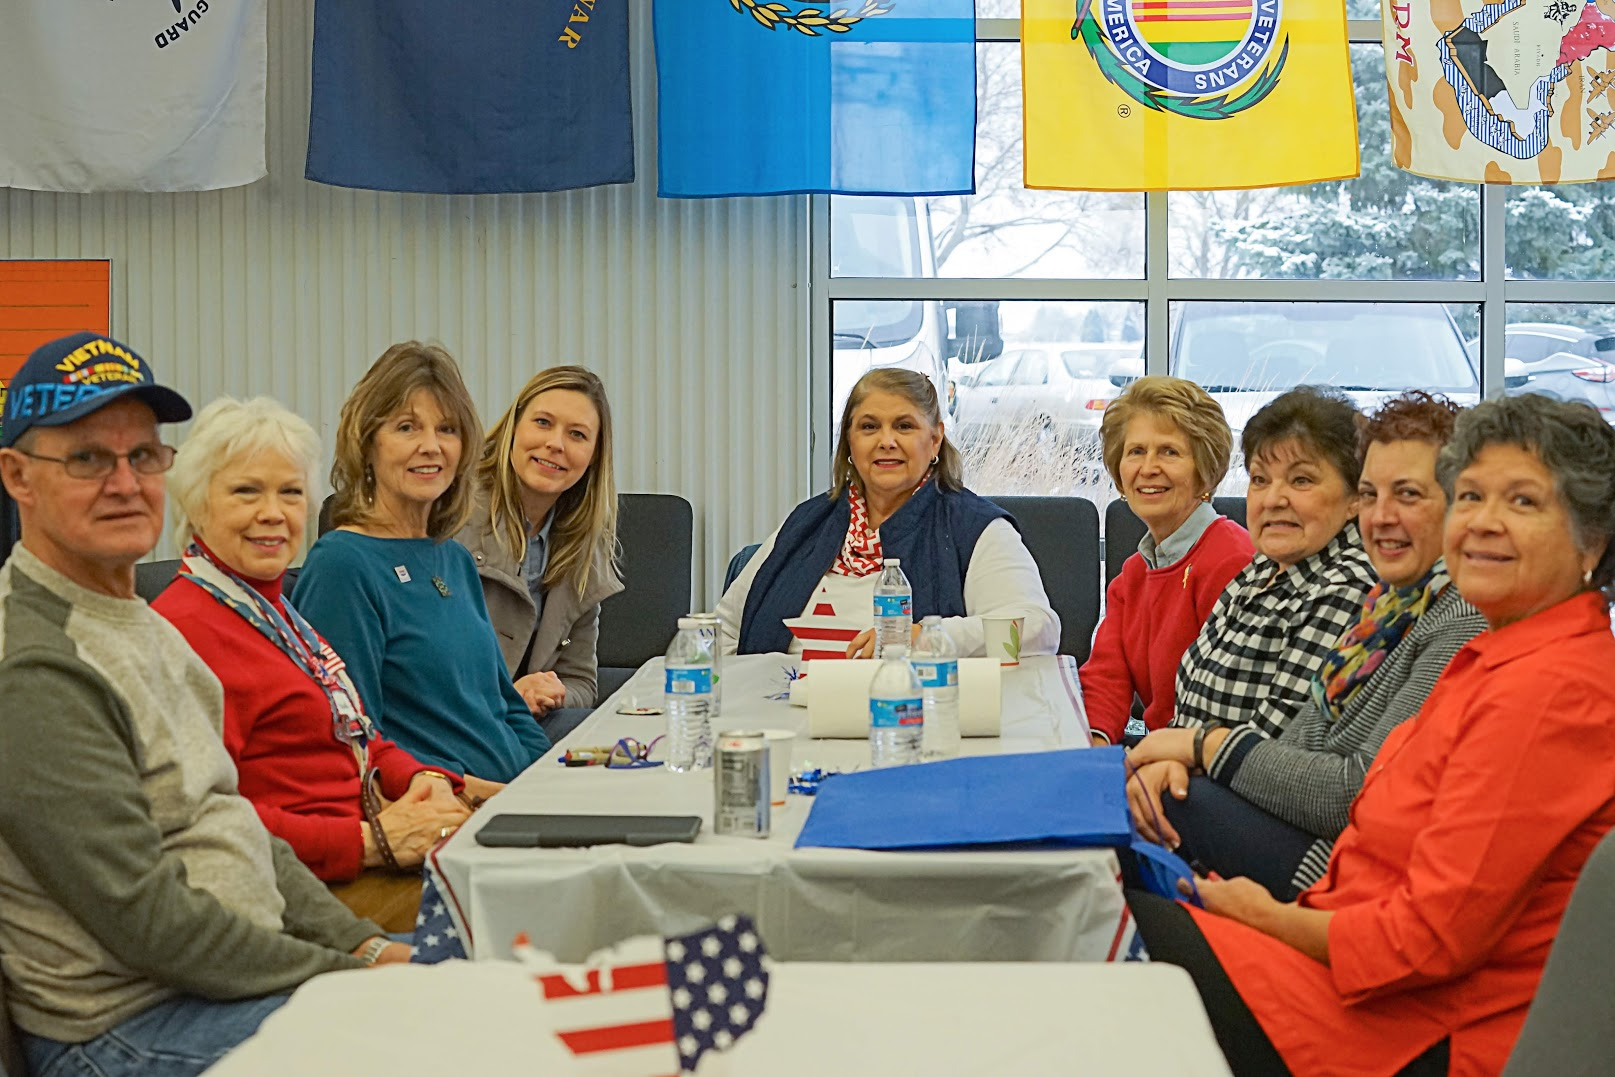 Members of the Quilts of Valor were in attendance at Fermilab's Veterans Day celebration. Photo: Leticia Shaddix